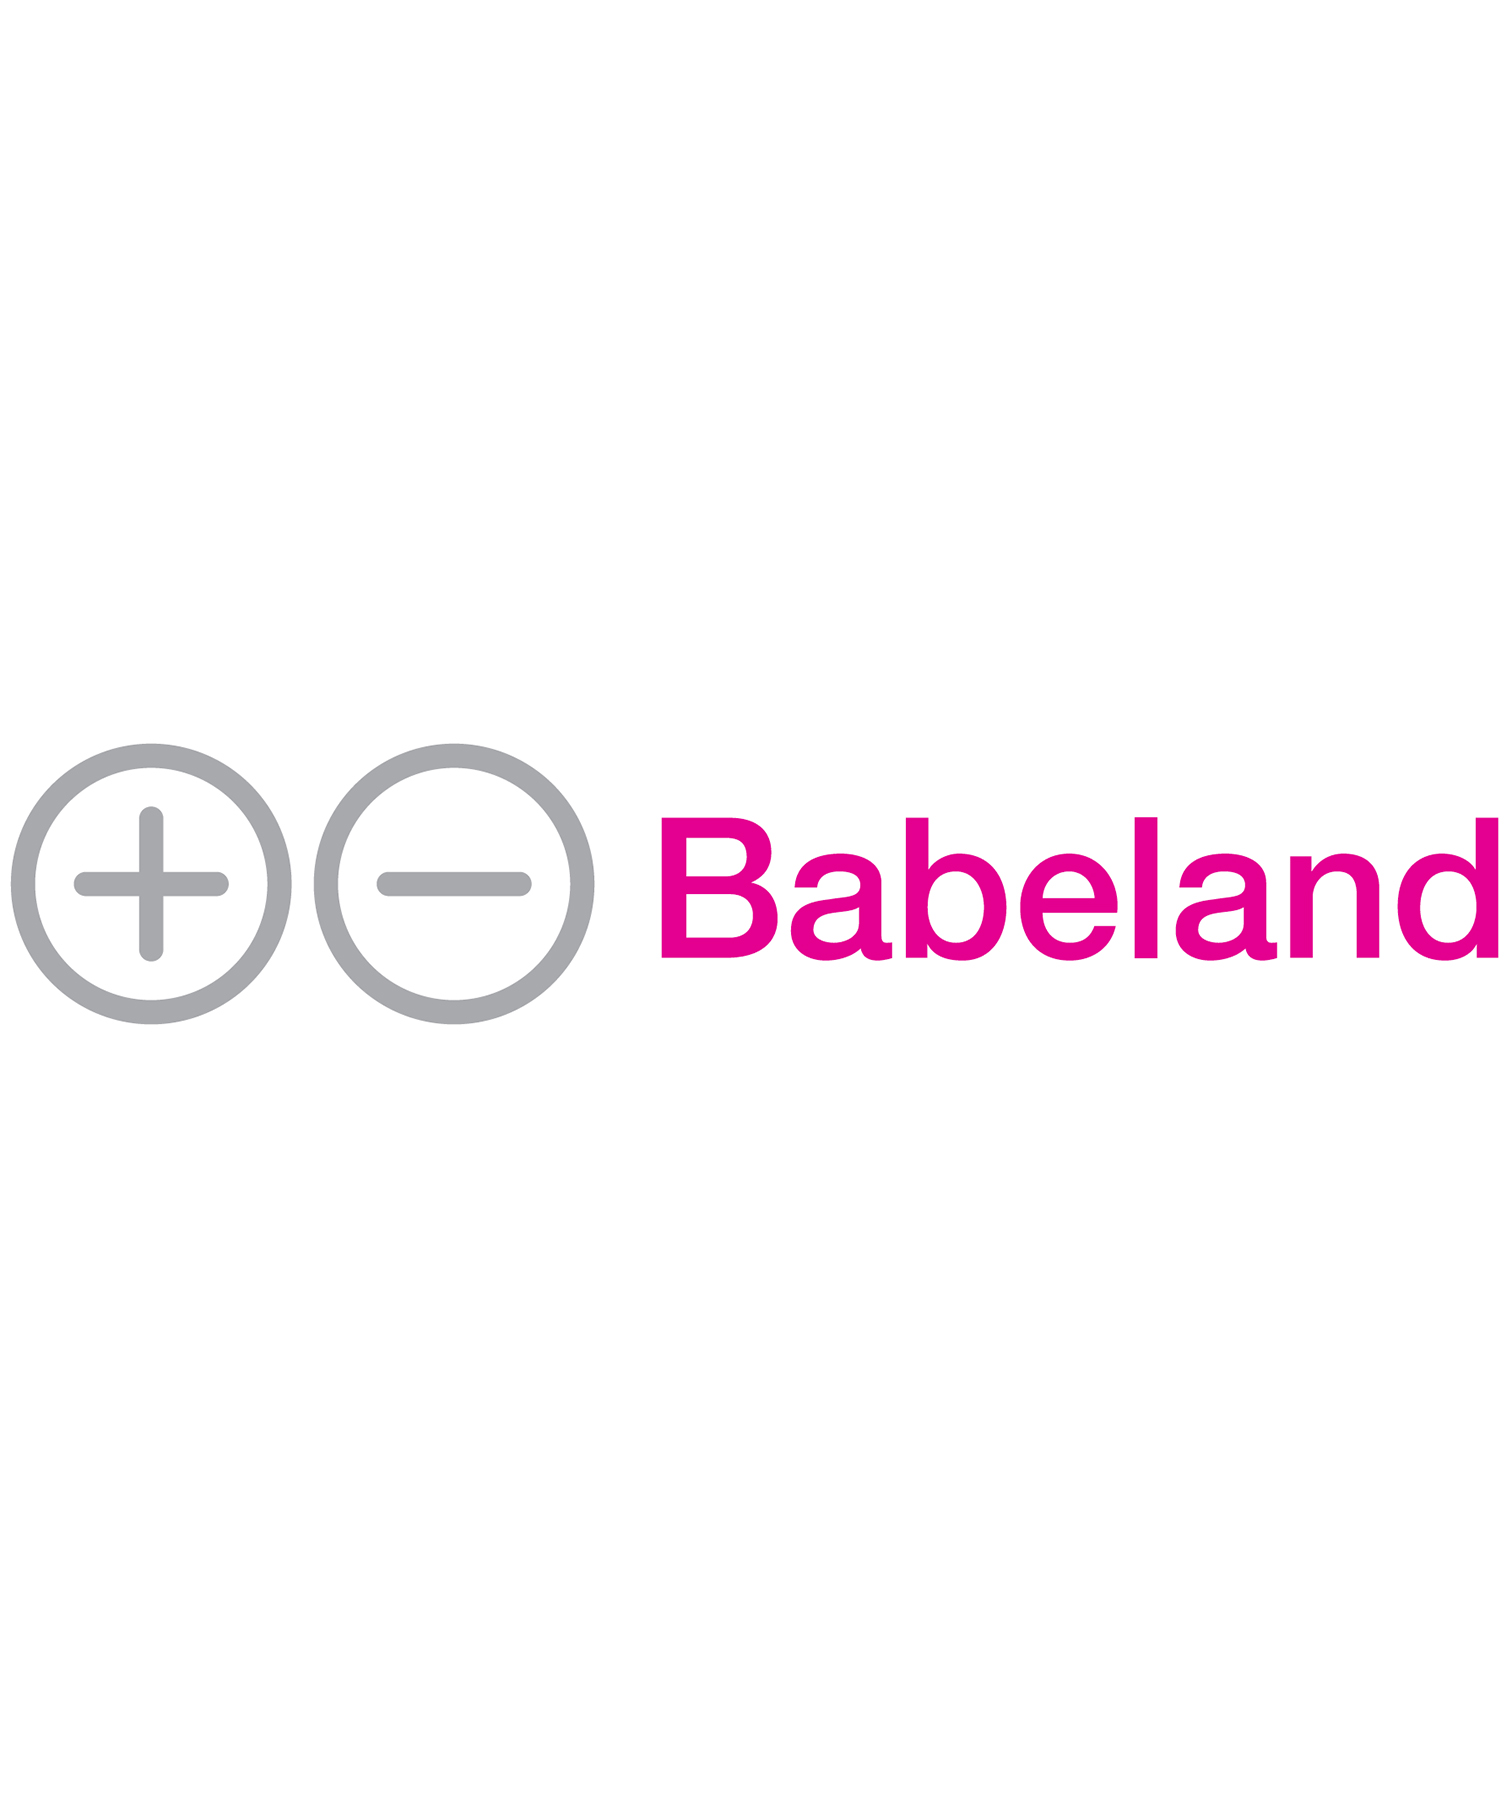 Babeland eGift Card